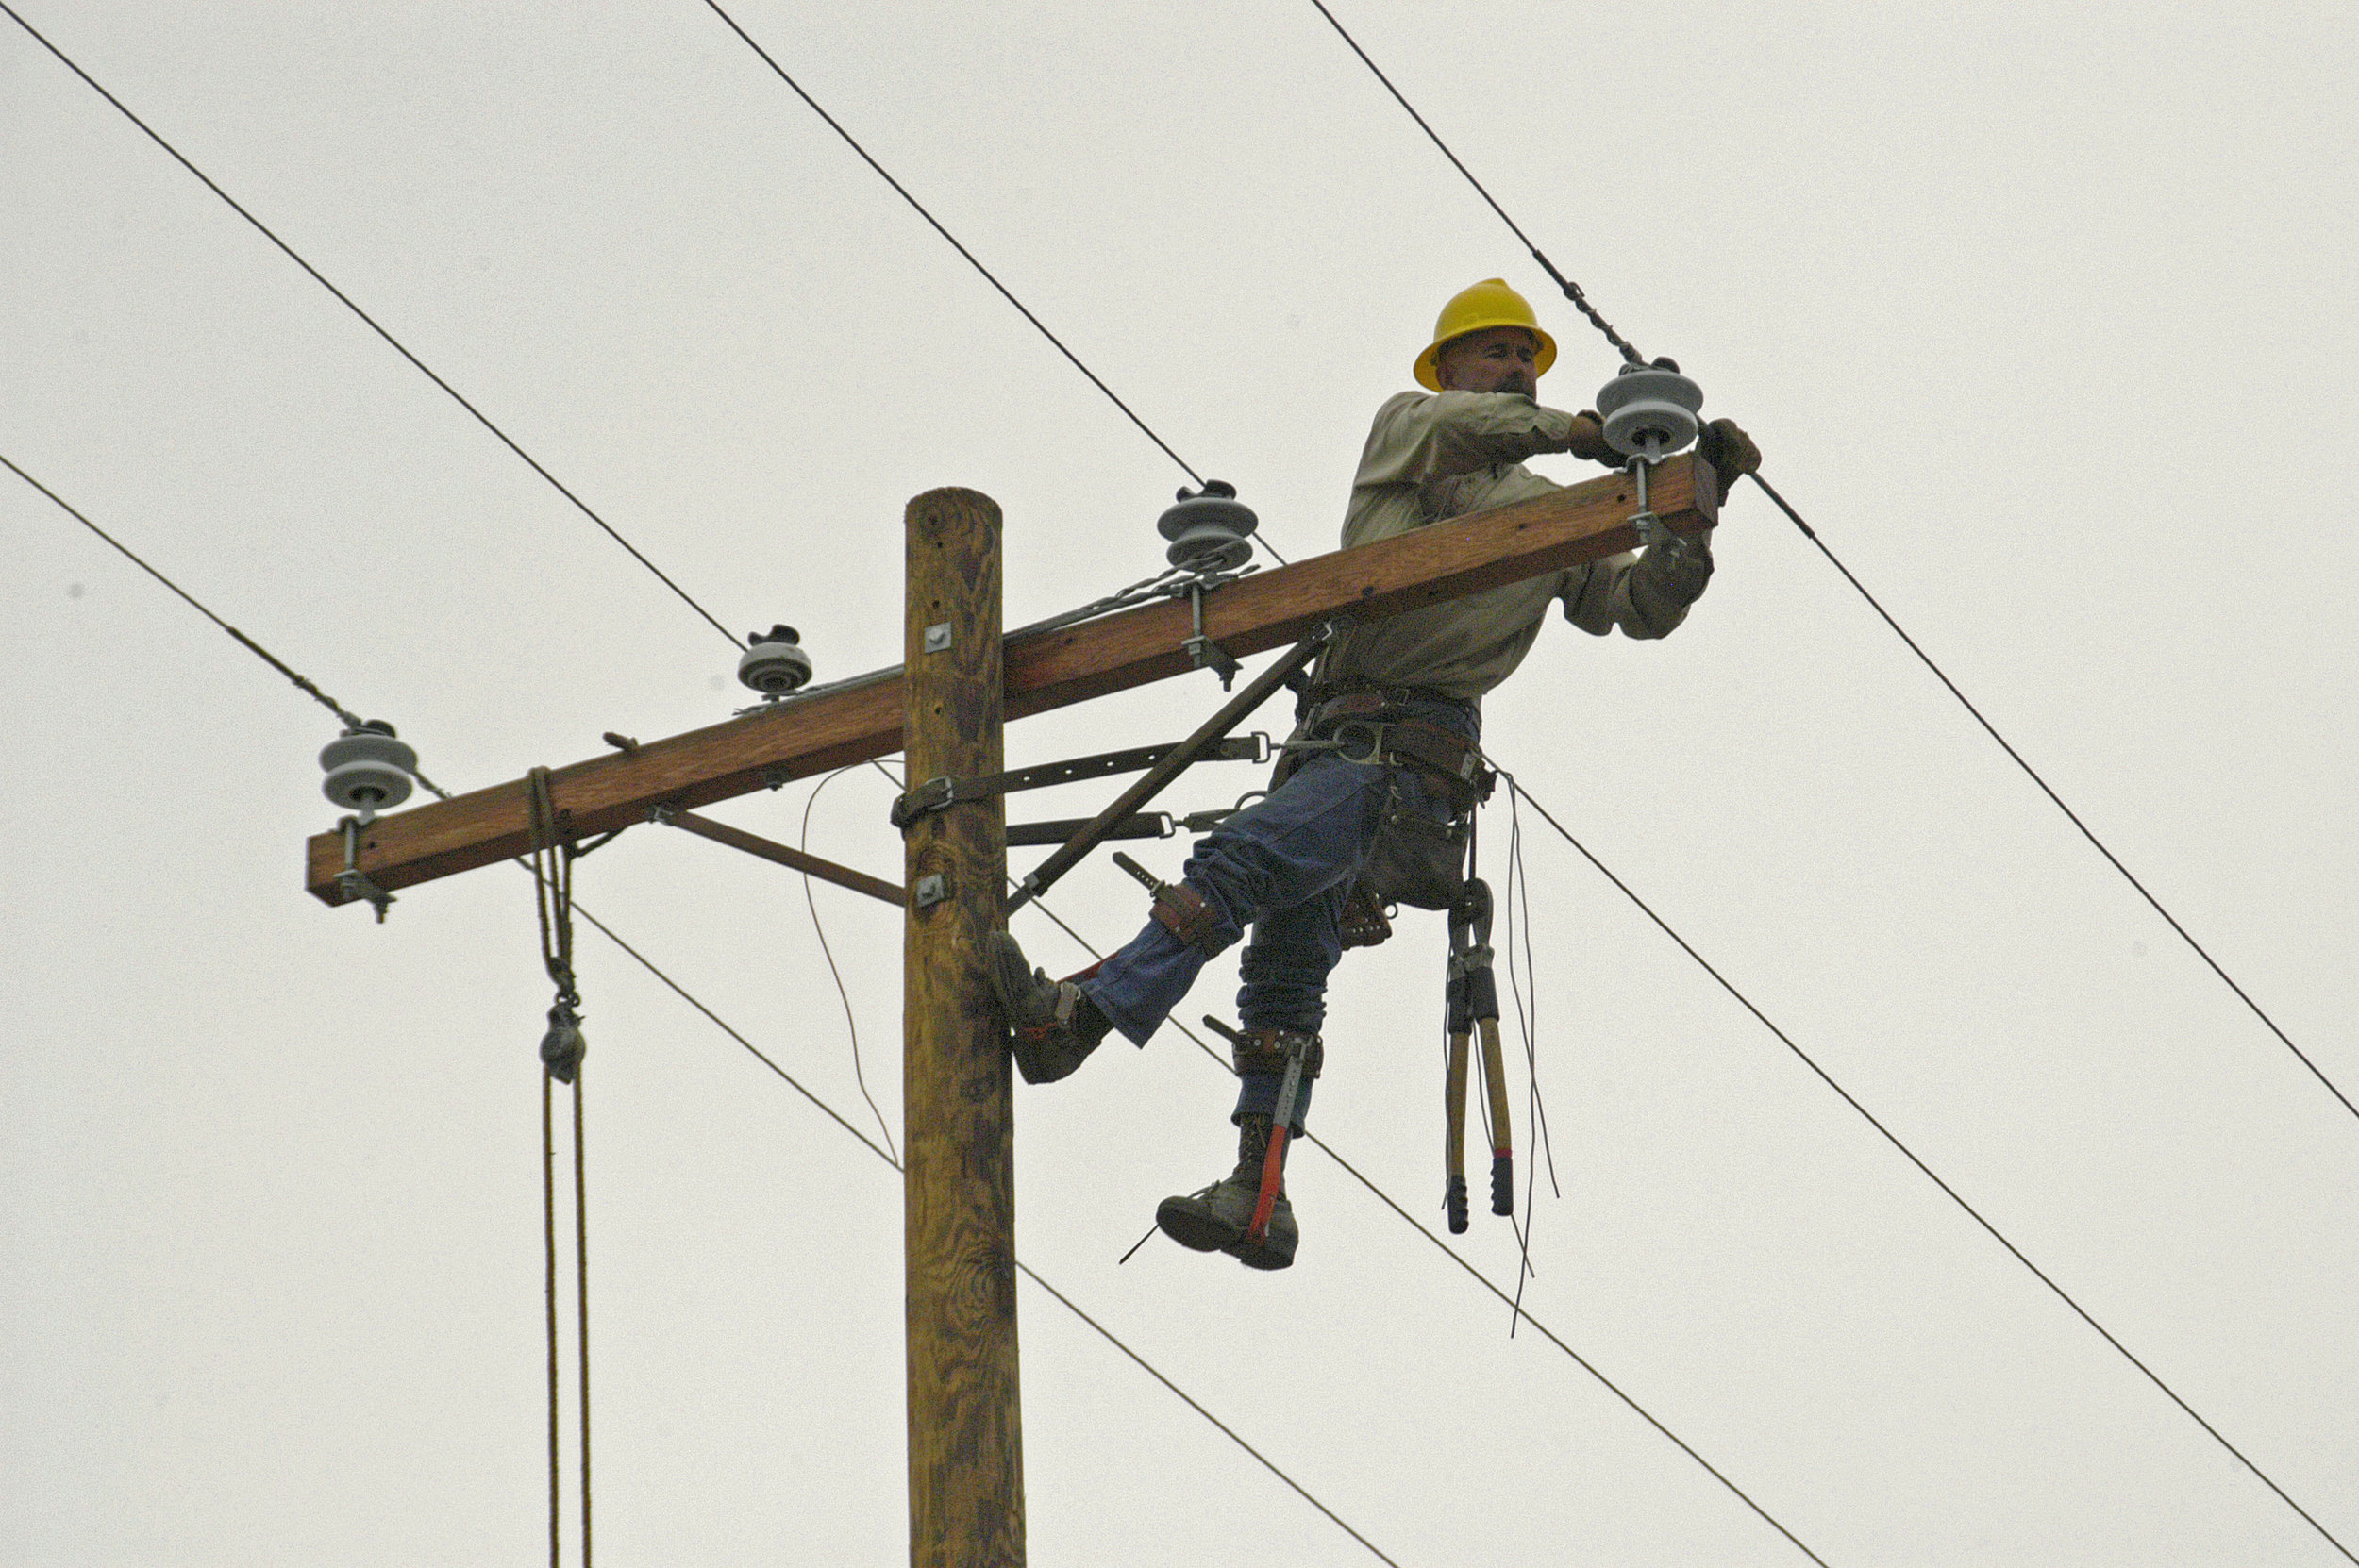 List-of-10-Most-Dangerous-Jobs-7.-Linemen-And-Roofers.jpg